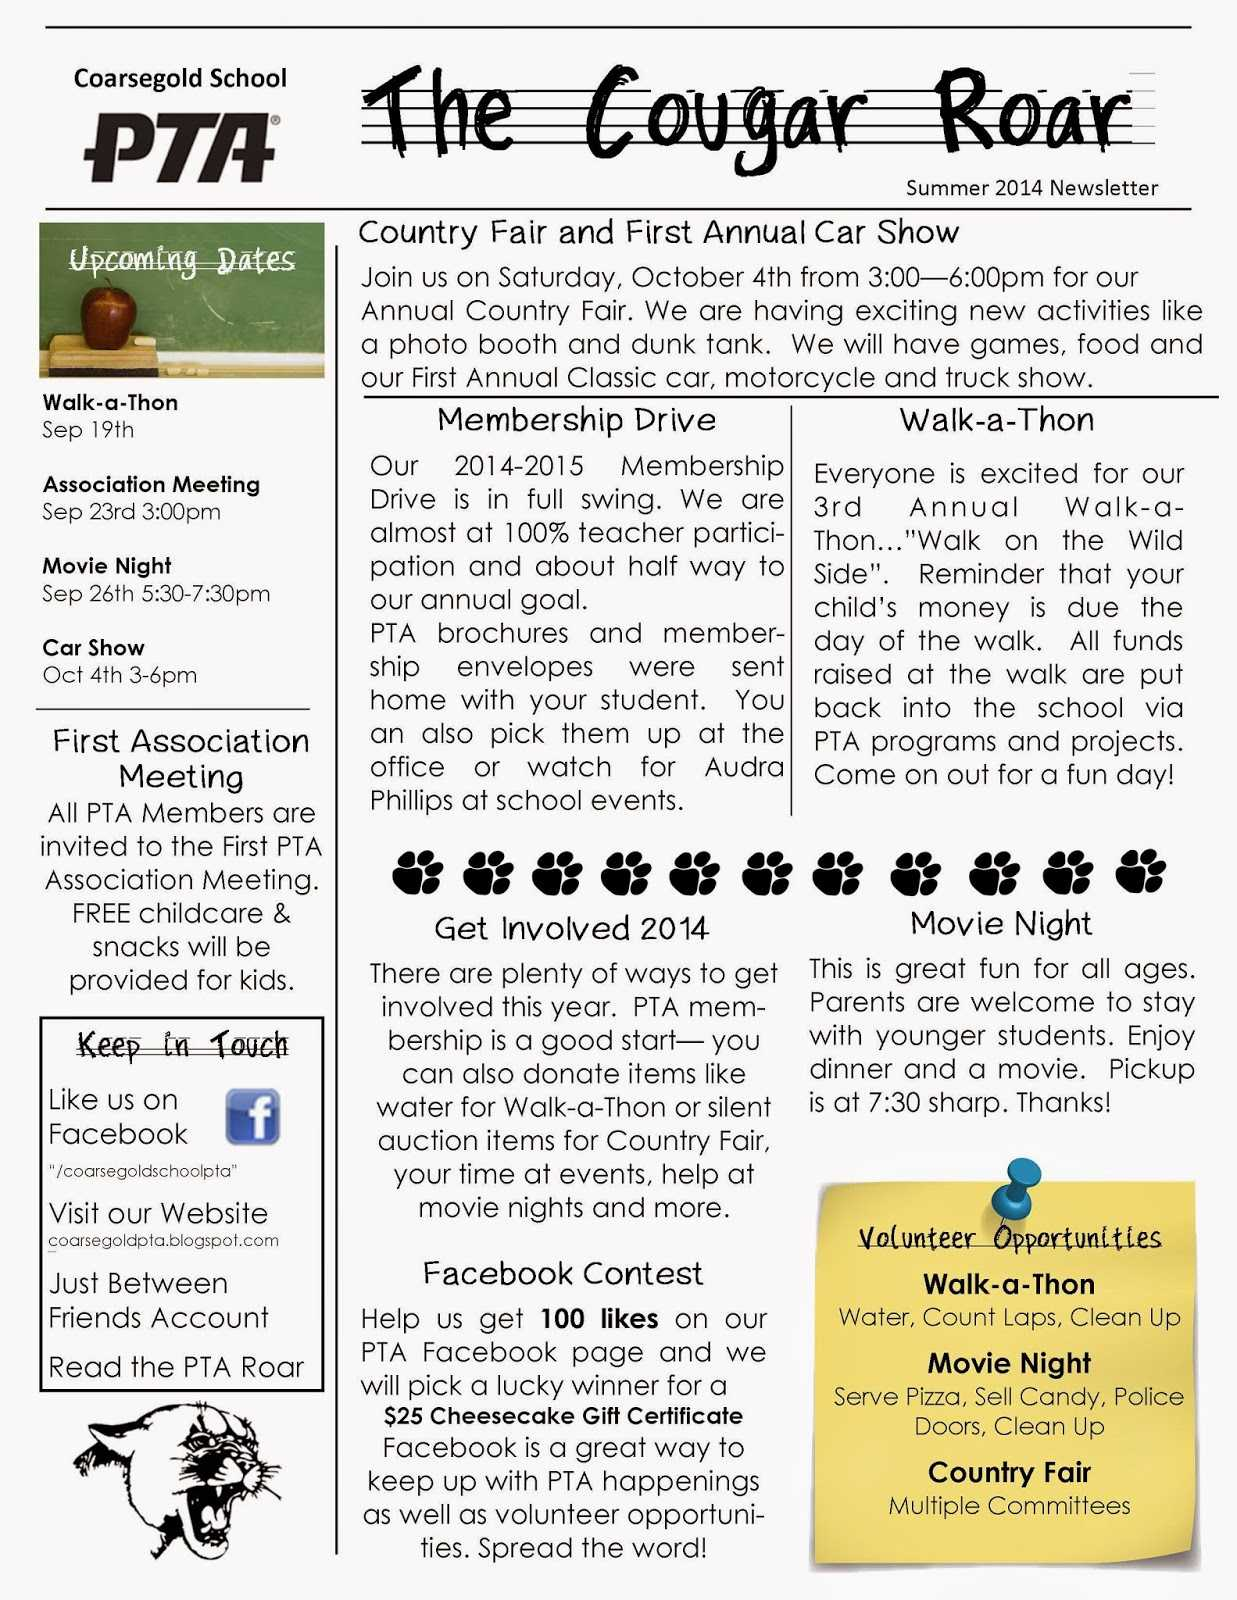 022 Free School Newsletter Templates For Free School Newsletter Templates